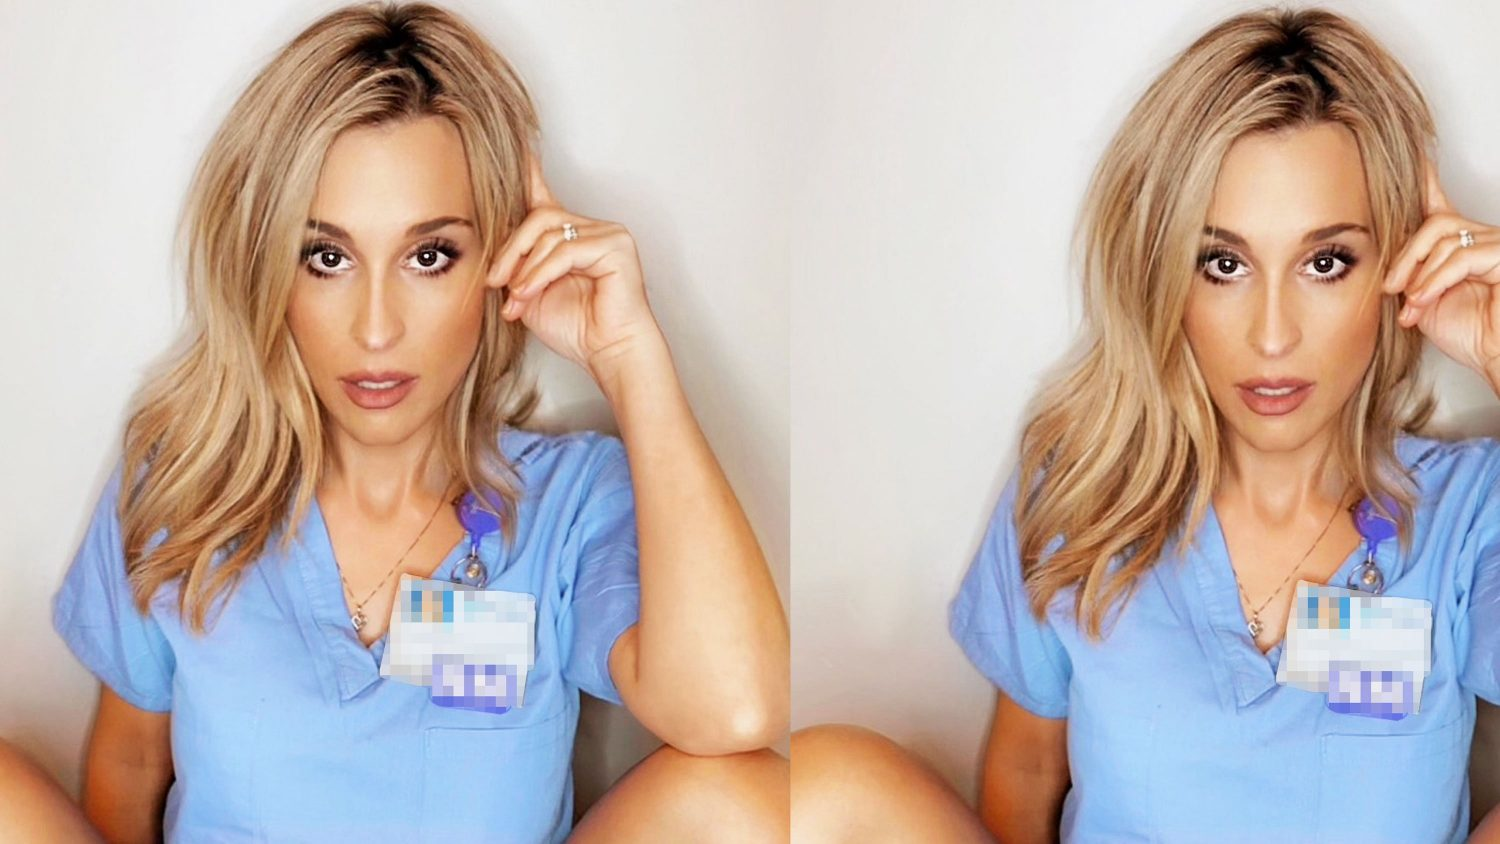 she quit being an icu nurse to make six figures on onlyfans